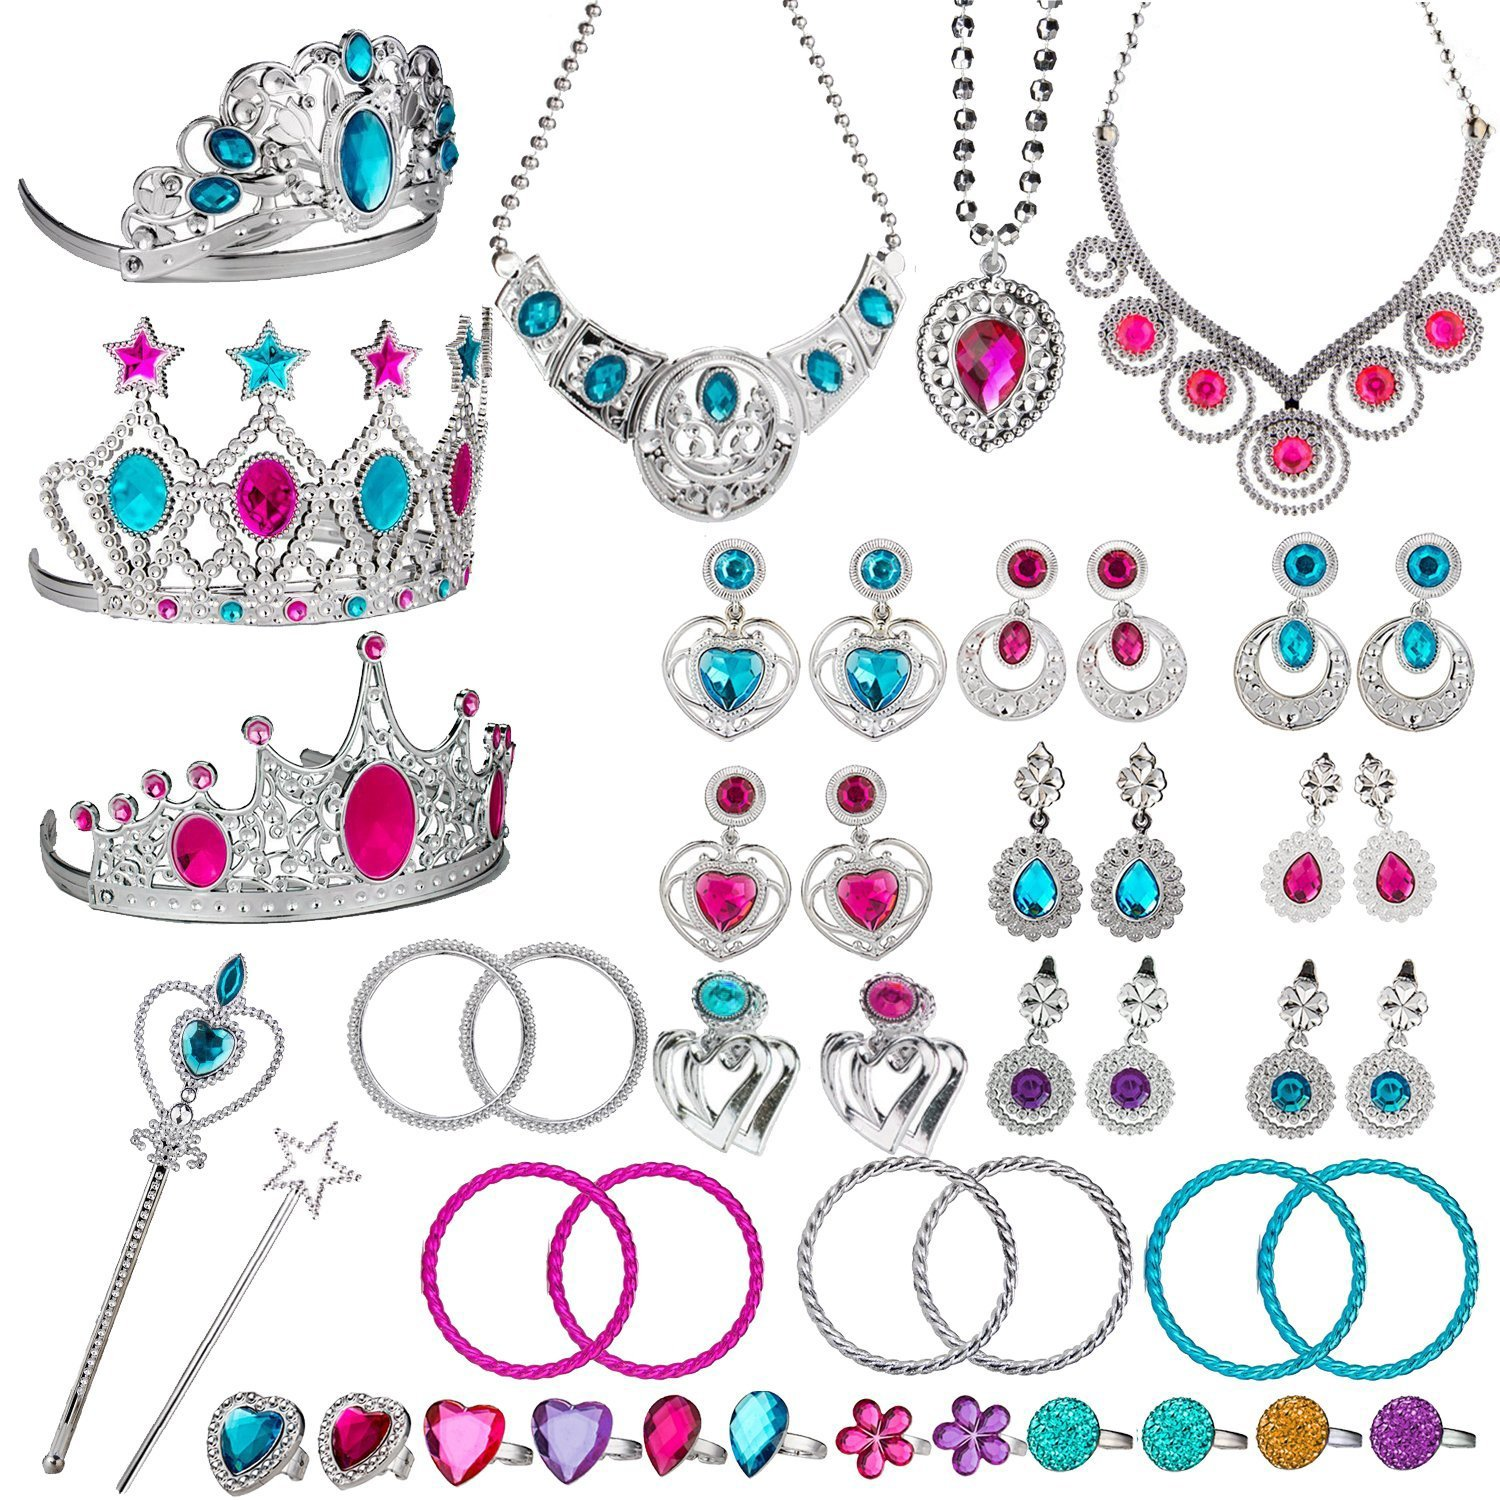 WATINC 46Pack Princess Pretend Jewelry Toy,Girl's Jewelry Dress Up Play Set,Included Crowns, Necklaces,Wands, Rings,Earrings and Bracelets,46 Pack by WATINC